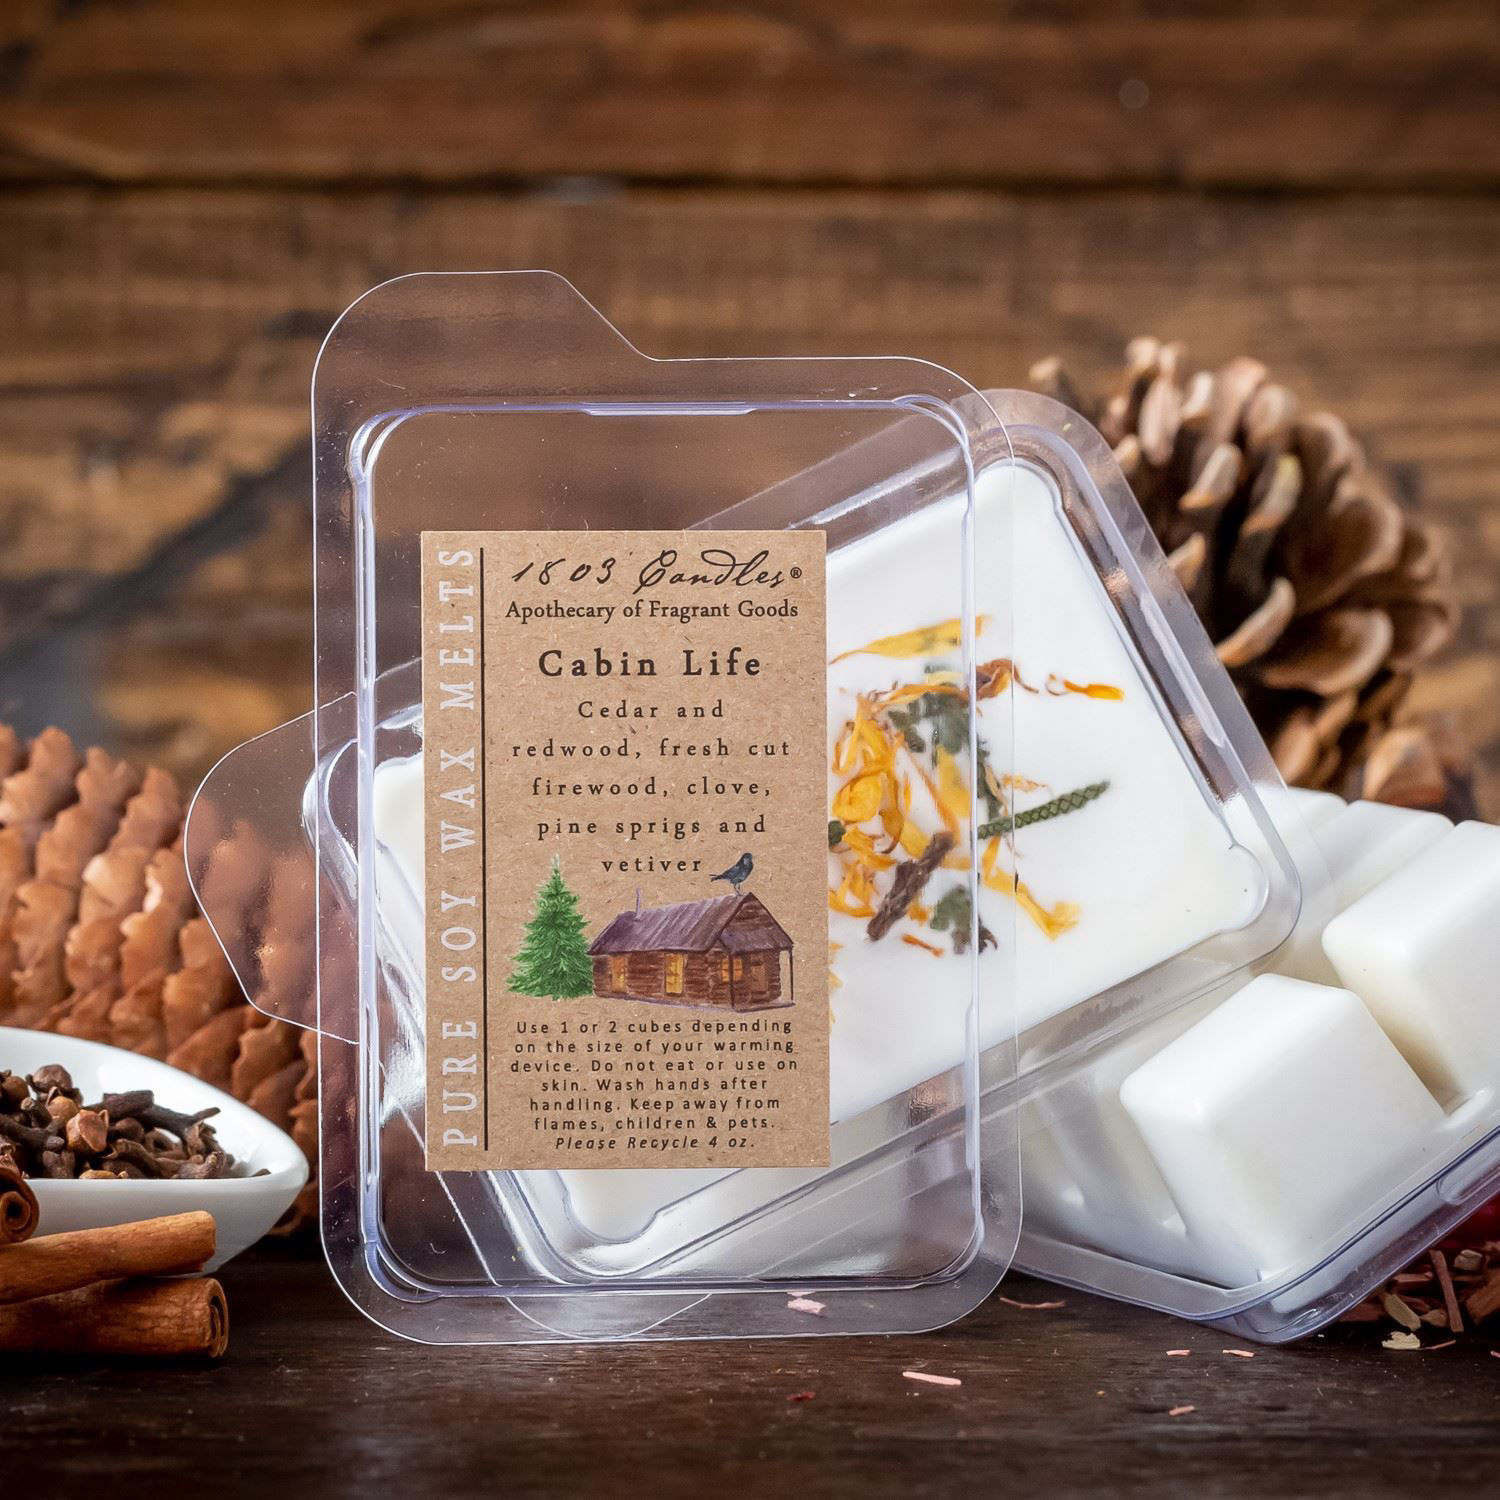 Cabin Life Melter by 1803 Candles